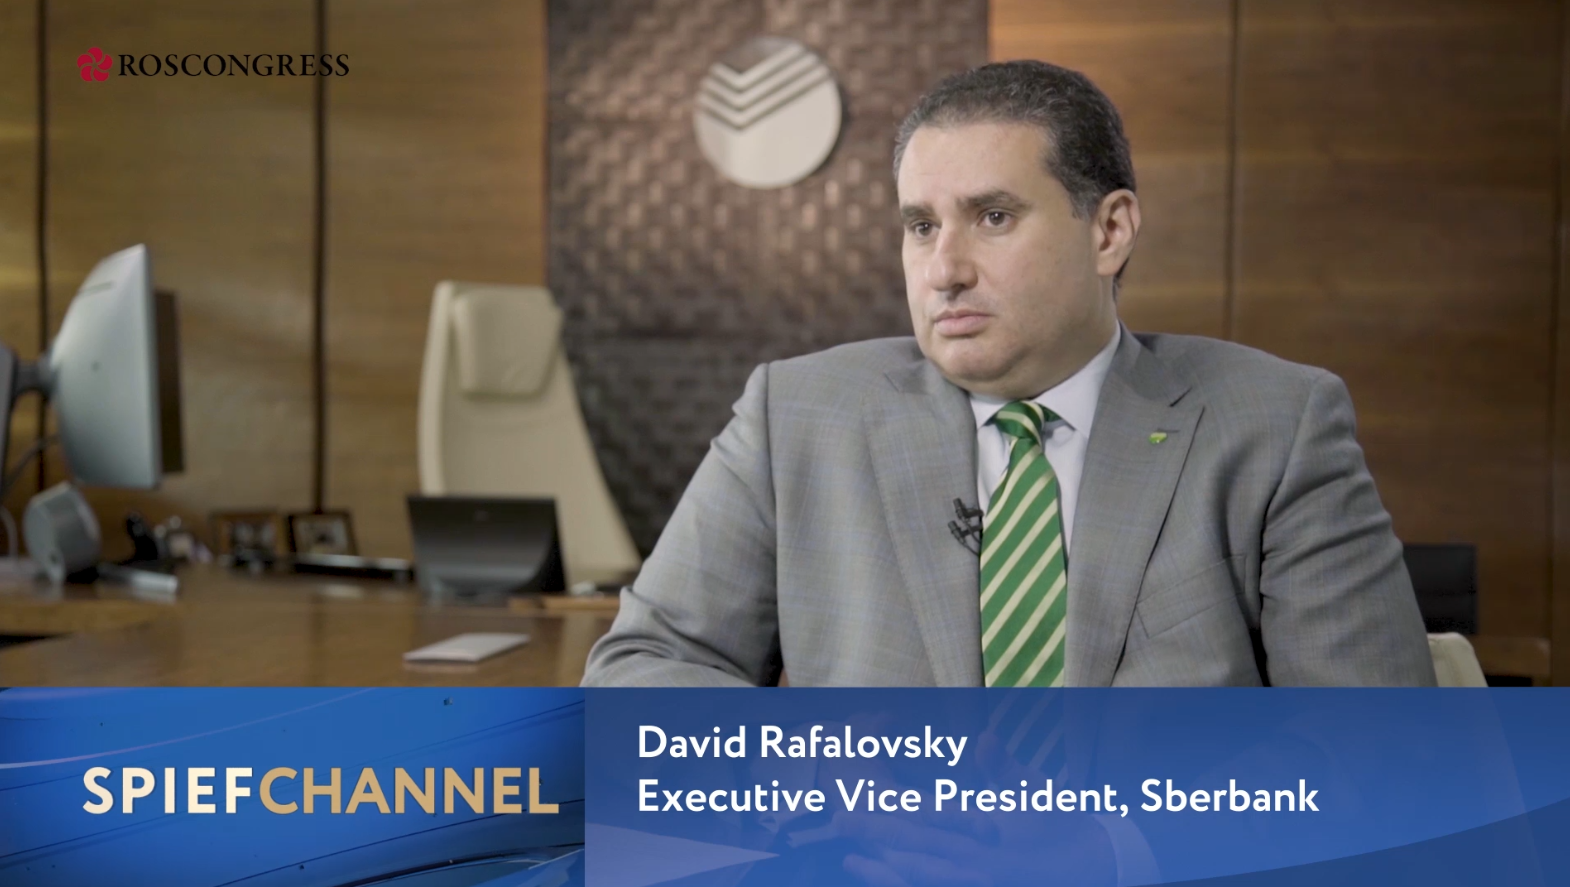 David Rafalovsky, Executive Vice President, Head of Technology Block, Sberbank; Chief Technology Officer, Sberbank Group